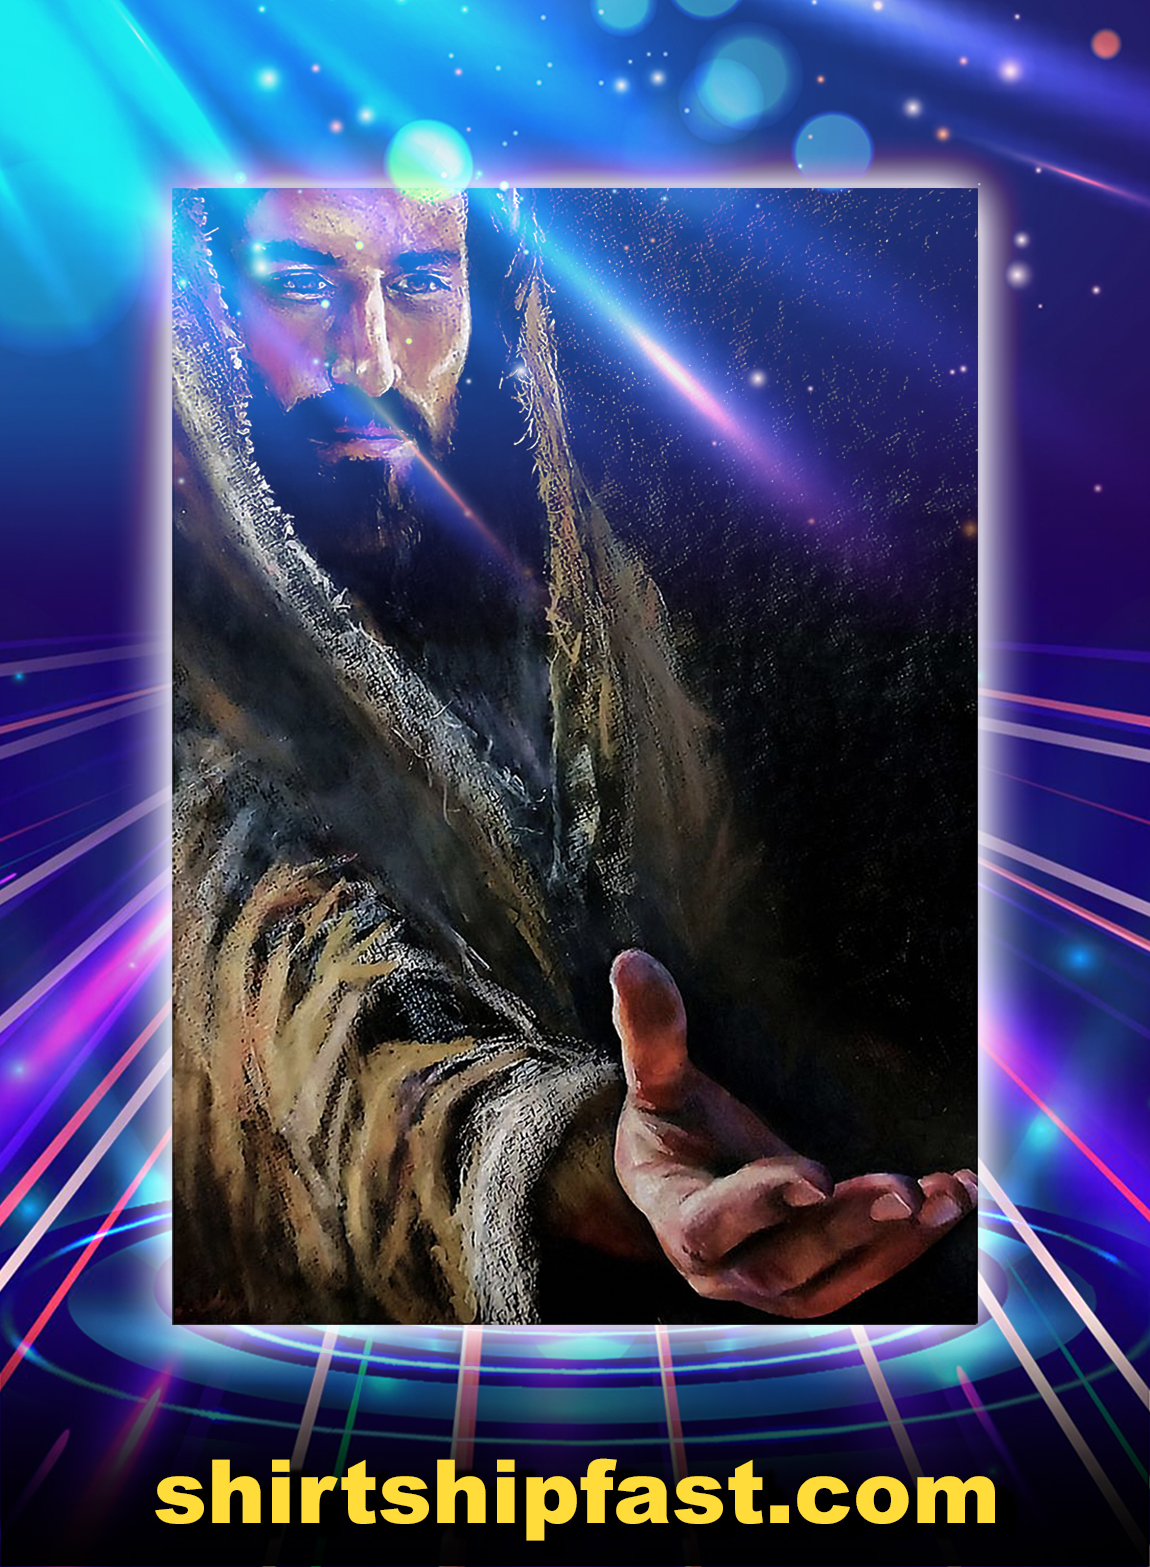 Jesus reaching hand poster - A2